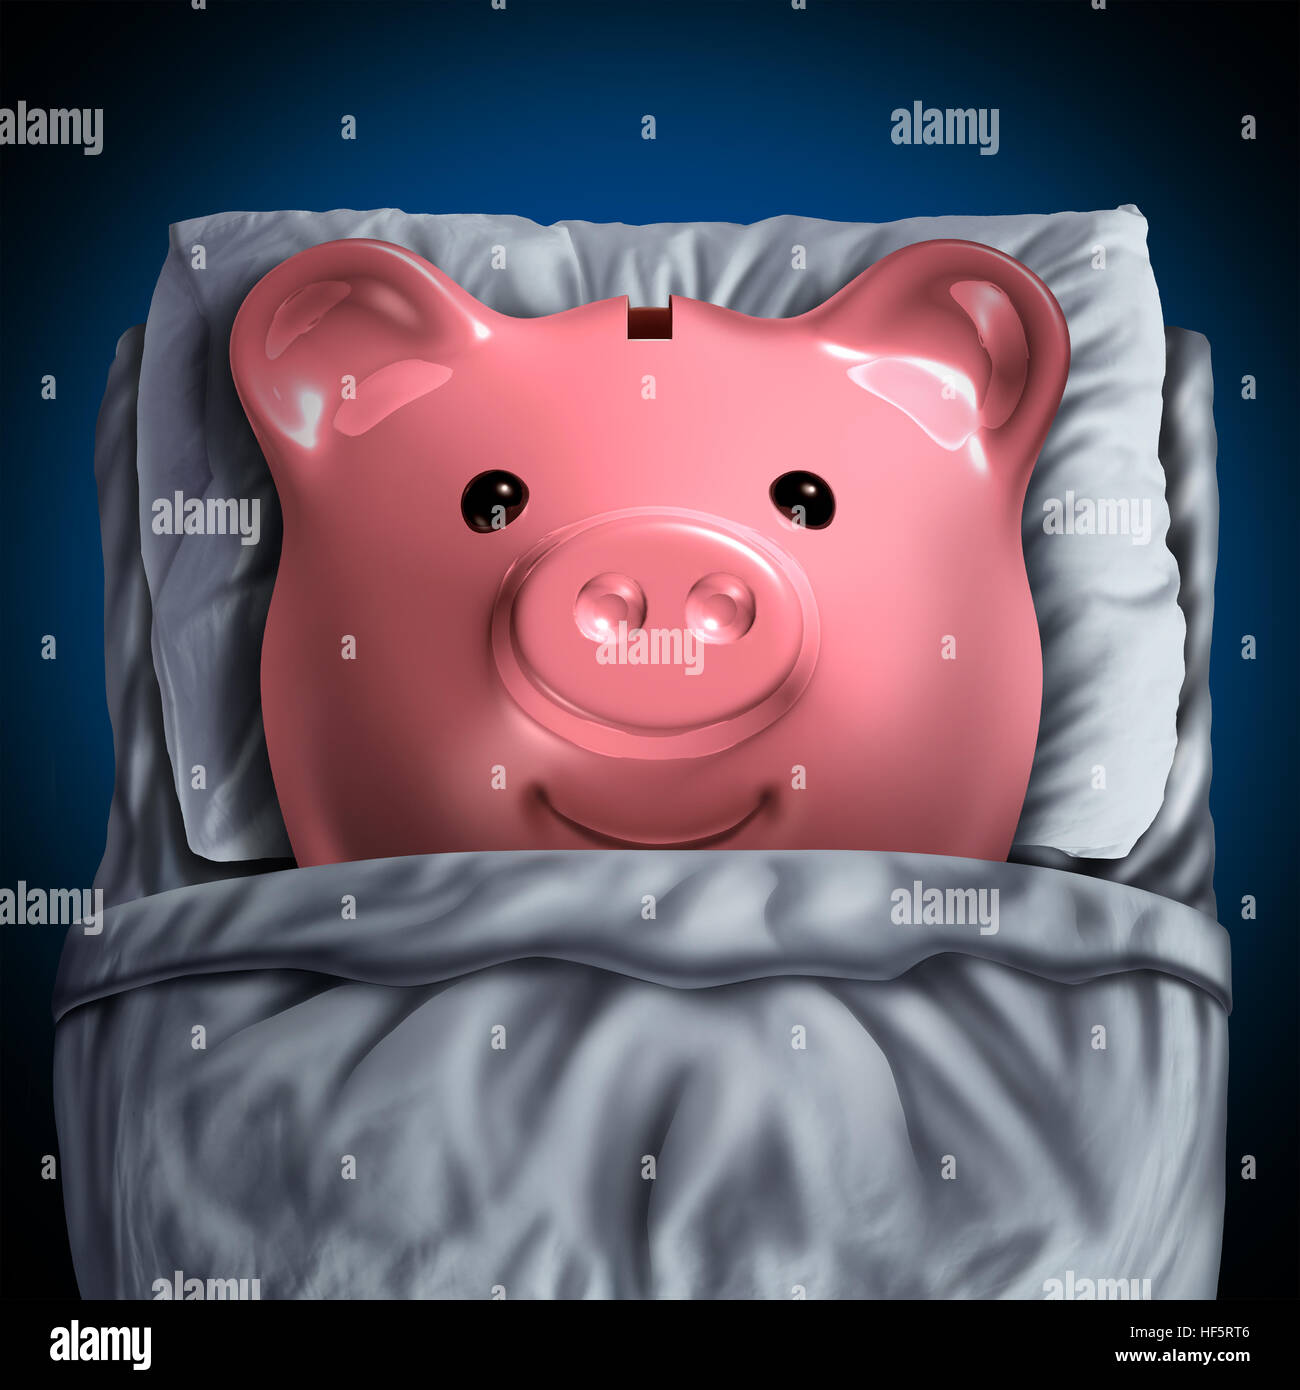 Inactive savings banking account symbol as a piggy bank resting in bed as a dormant unclaimed financial investment - Stock Image